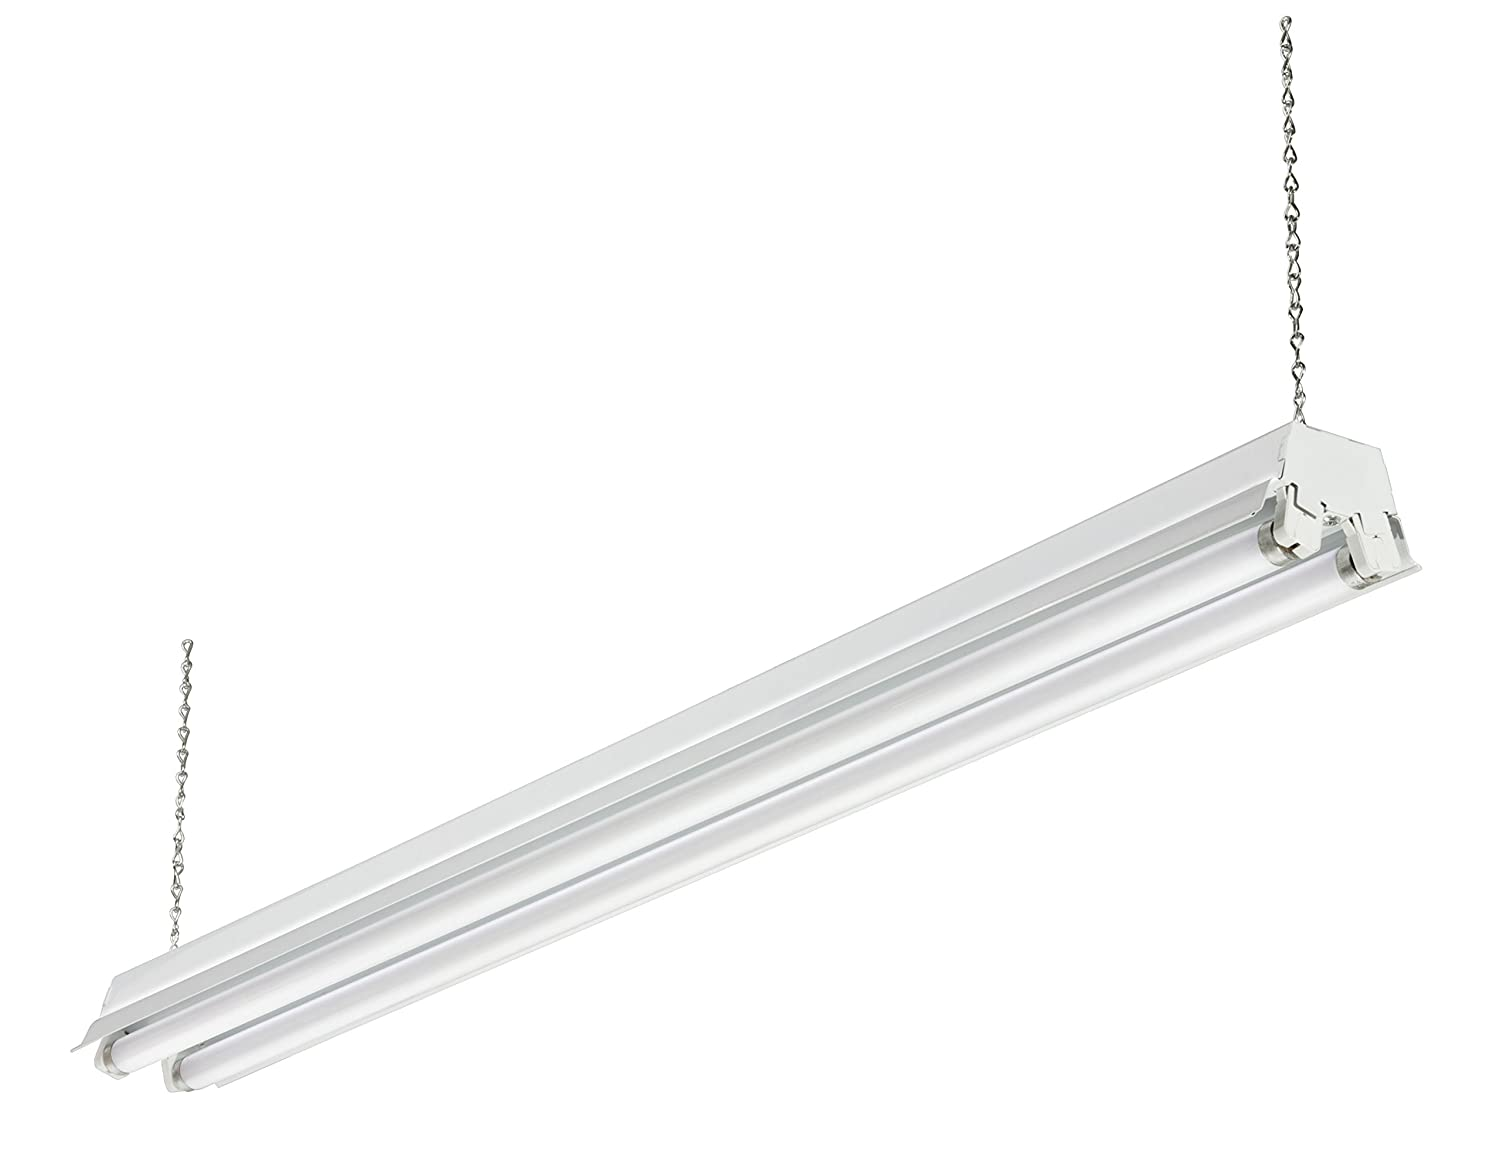 Amazon lithonia lighting 1245 shoplighth2h183 2 light amazon lithonia lighting 1245 shoplighth2h183 2 light fluorescent shop light polished silver home improvement arubaitofo Images